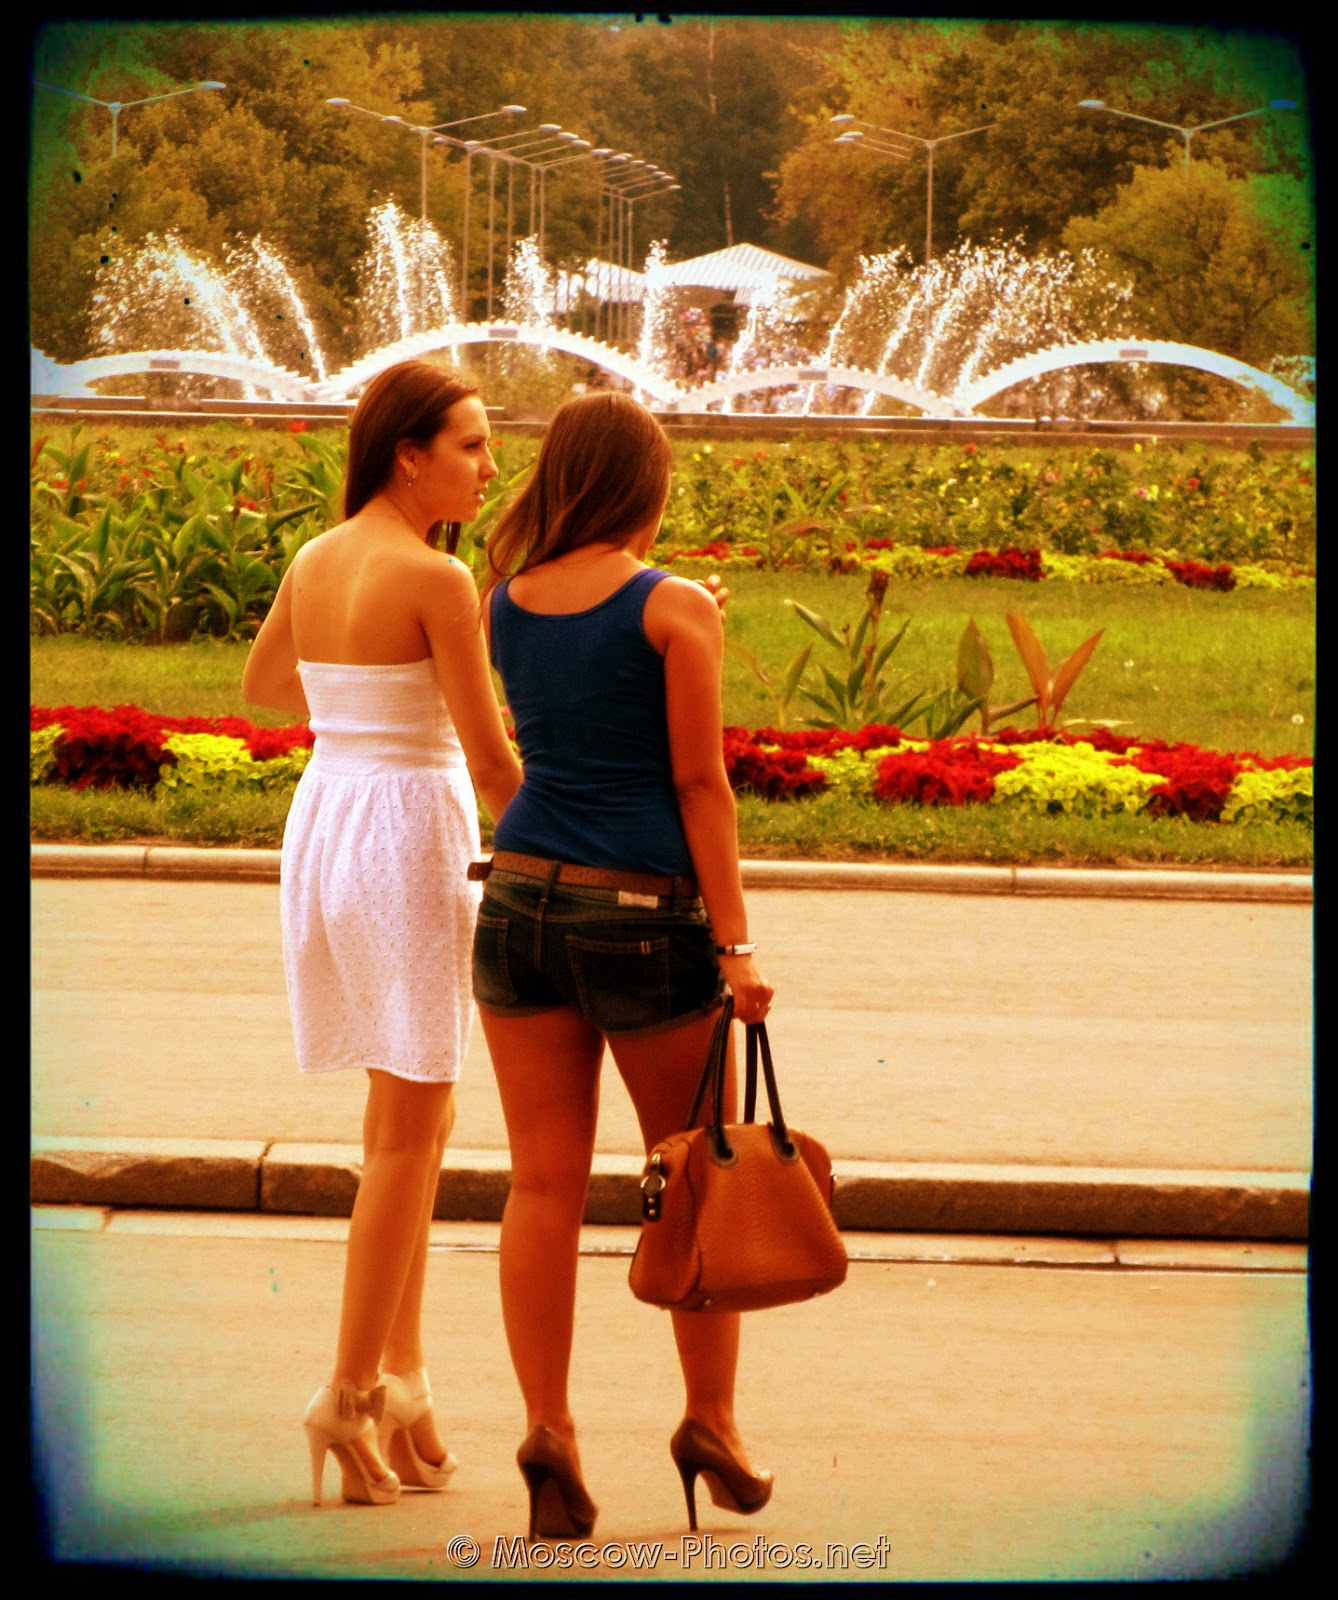 Moscow beautiful girls in a beautiful place